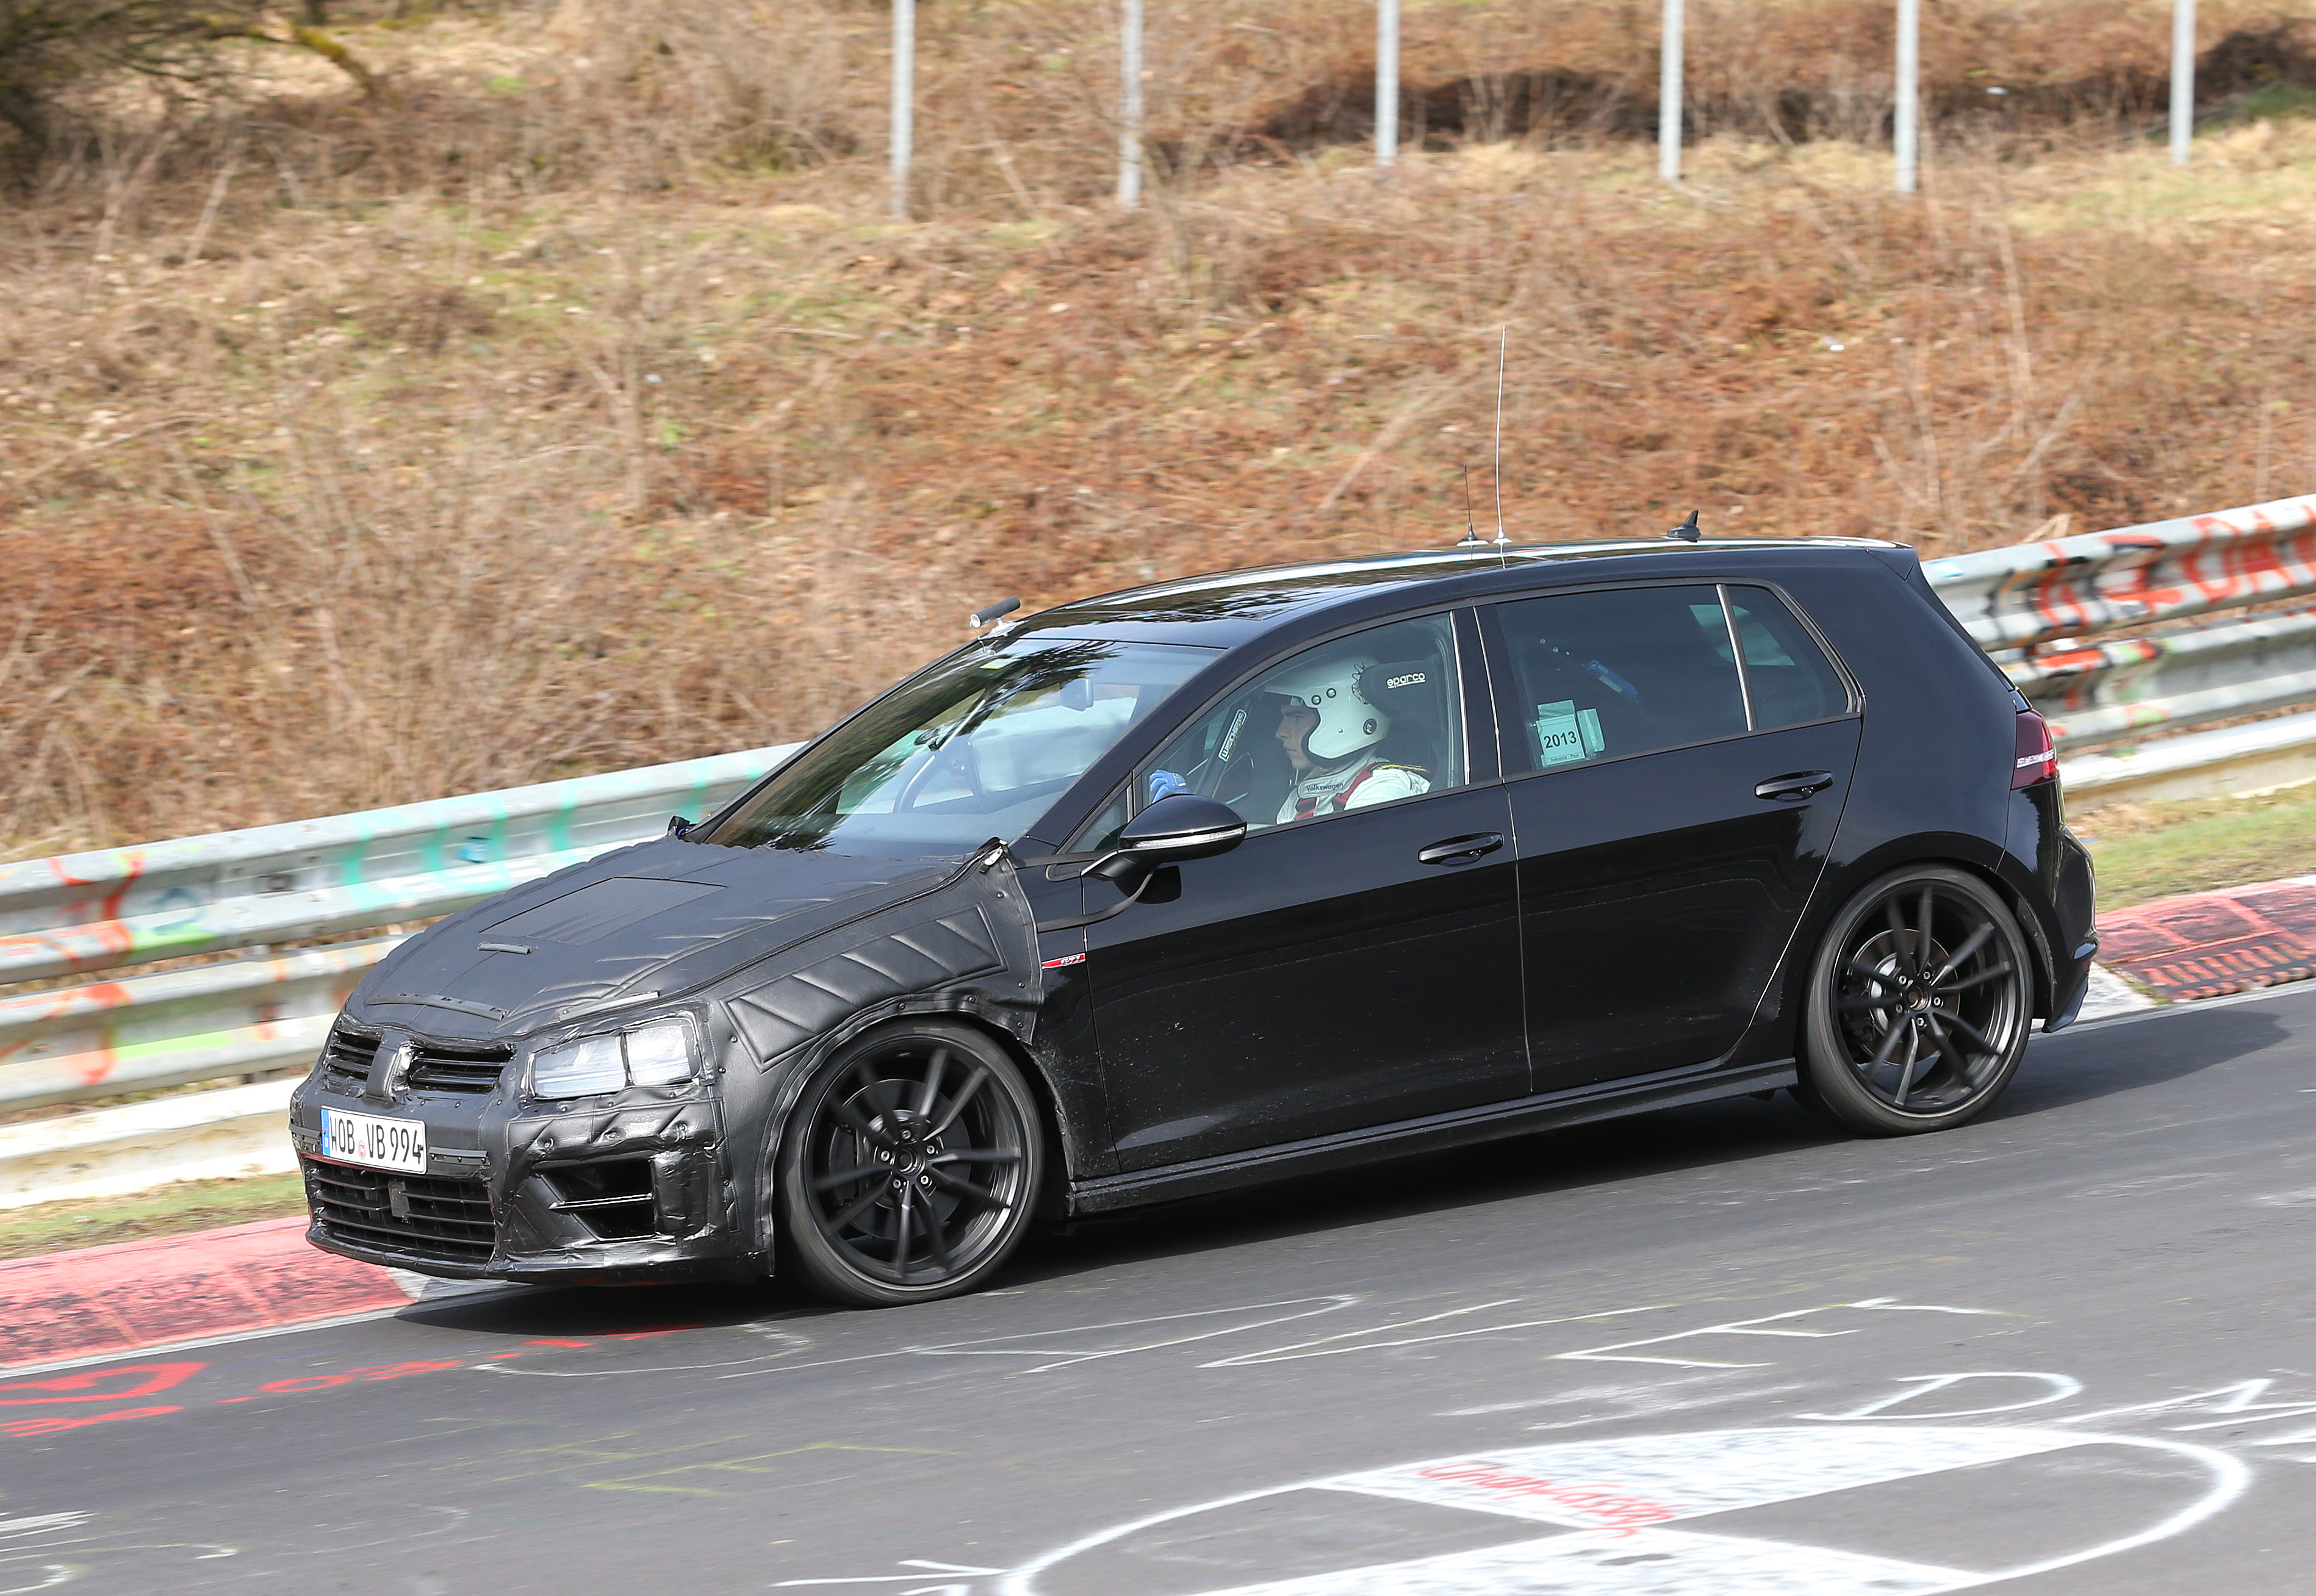 volkswagen-golf-7-R-004